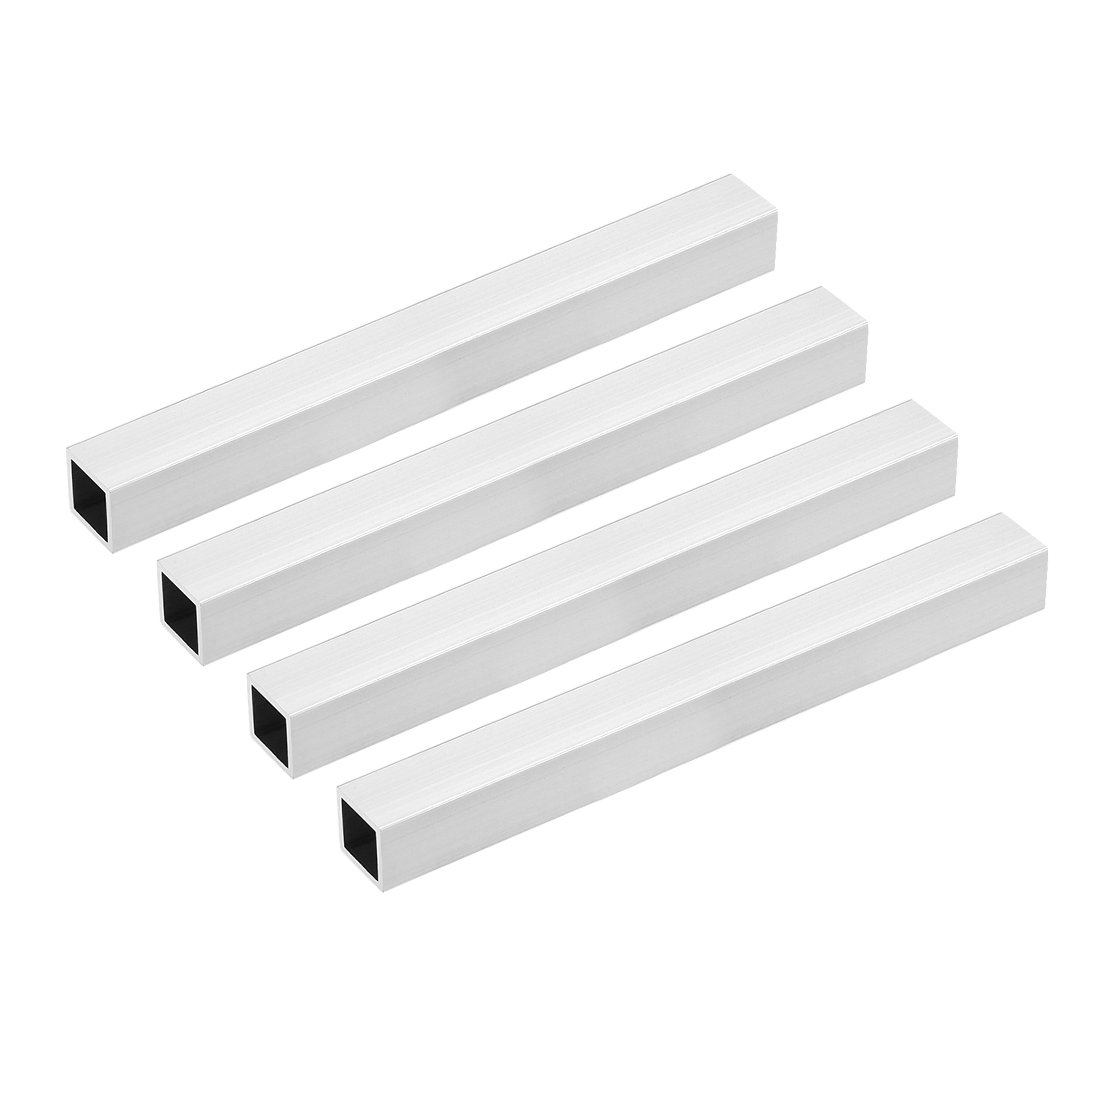 6063 Aluminum Square Tube 20mmx20mmx1.5mm Wall Thickness 200mm Long Tubing 4 Pcs